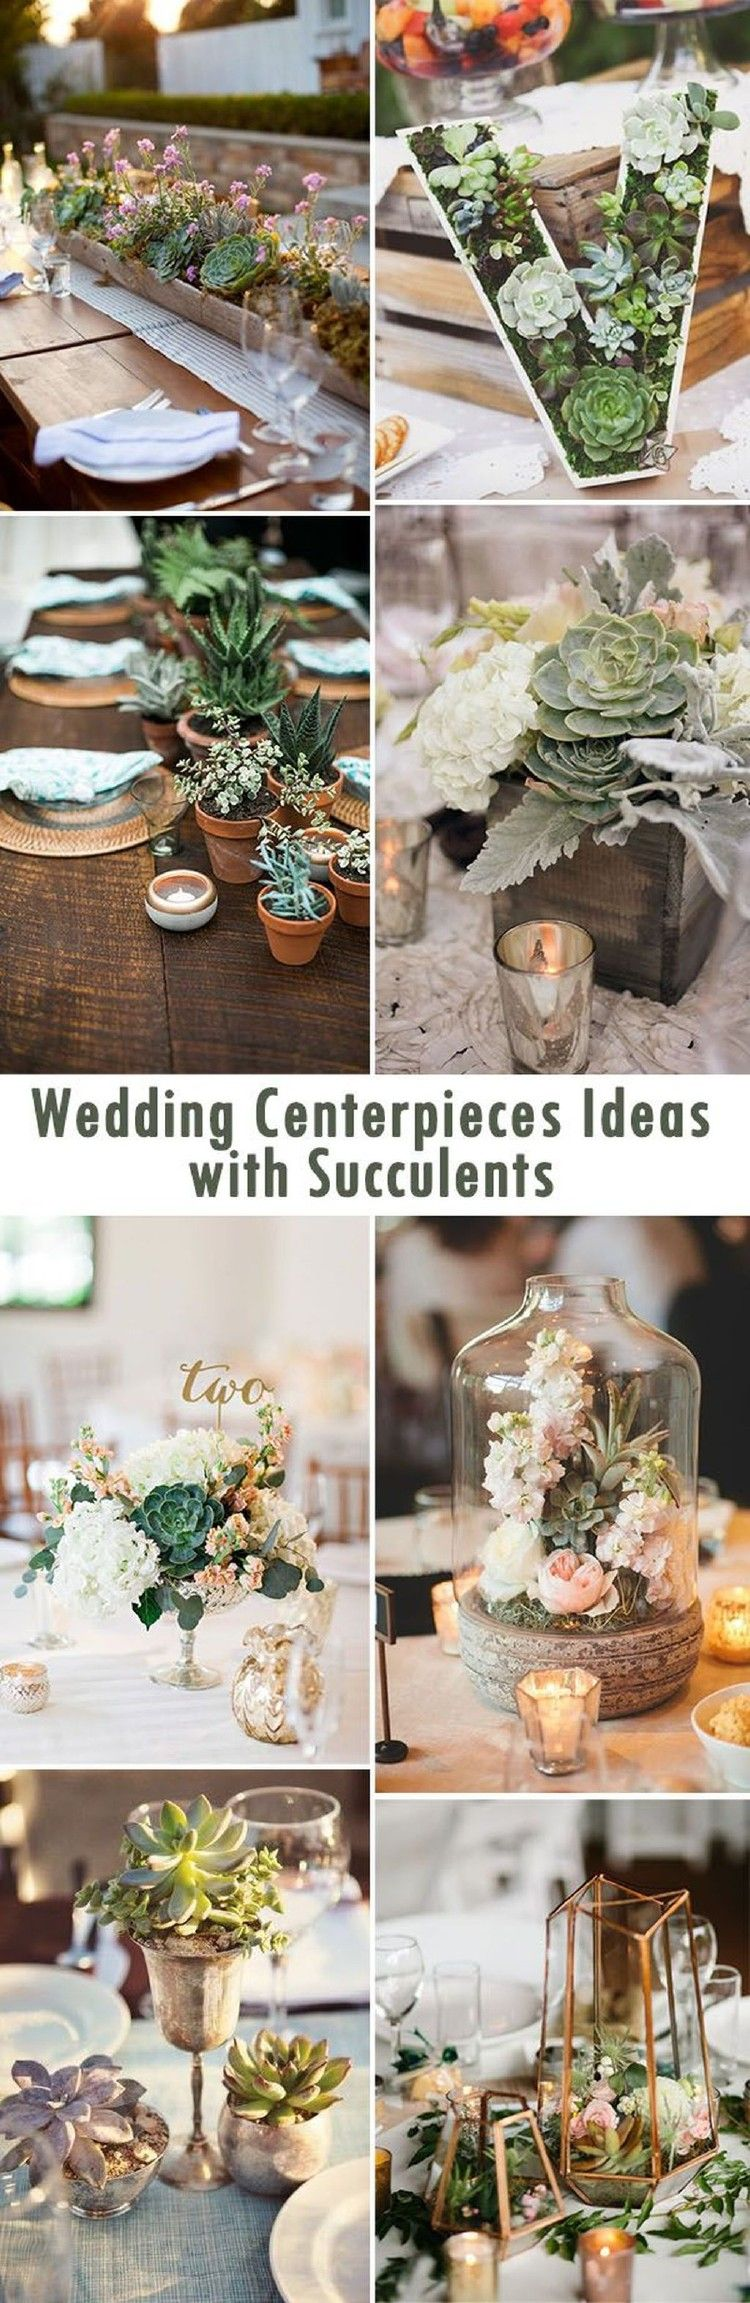 Wedding decorations ideas at home   Creative Diy Succulent Centerpieces For Your Home Beauty design